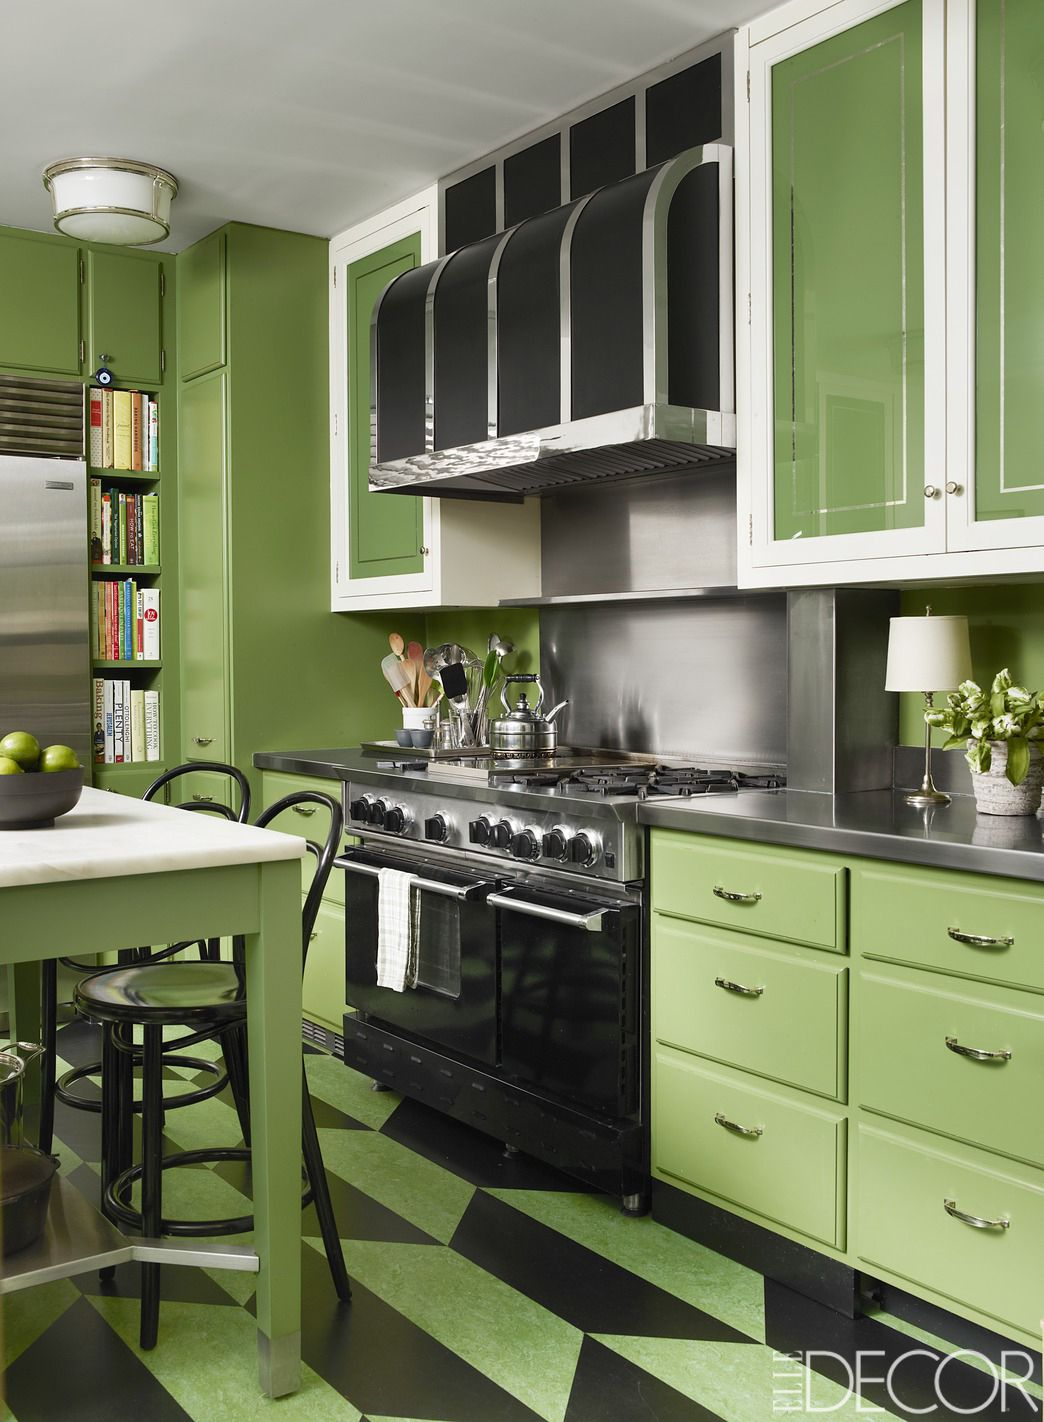 40 Small Kitchen Design Ideas Decorating Tiny Kitchens